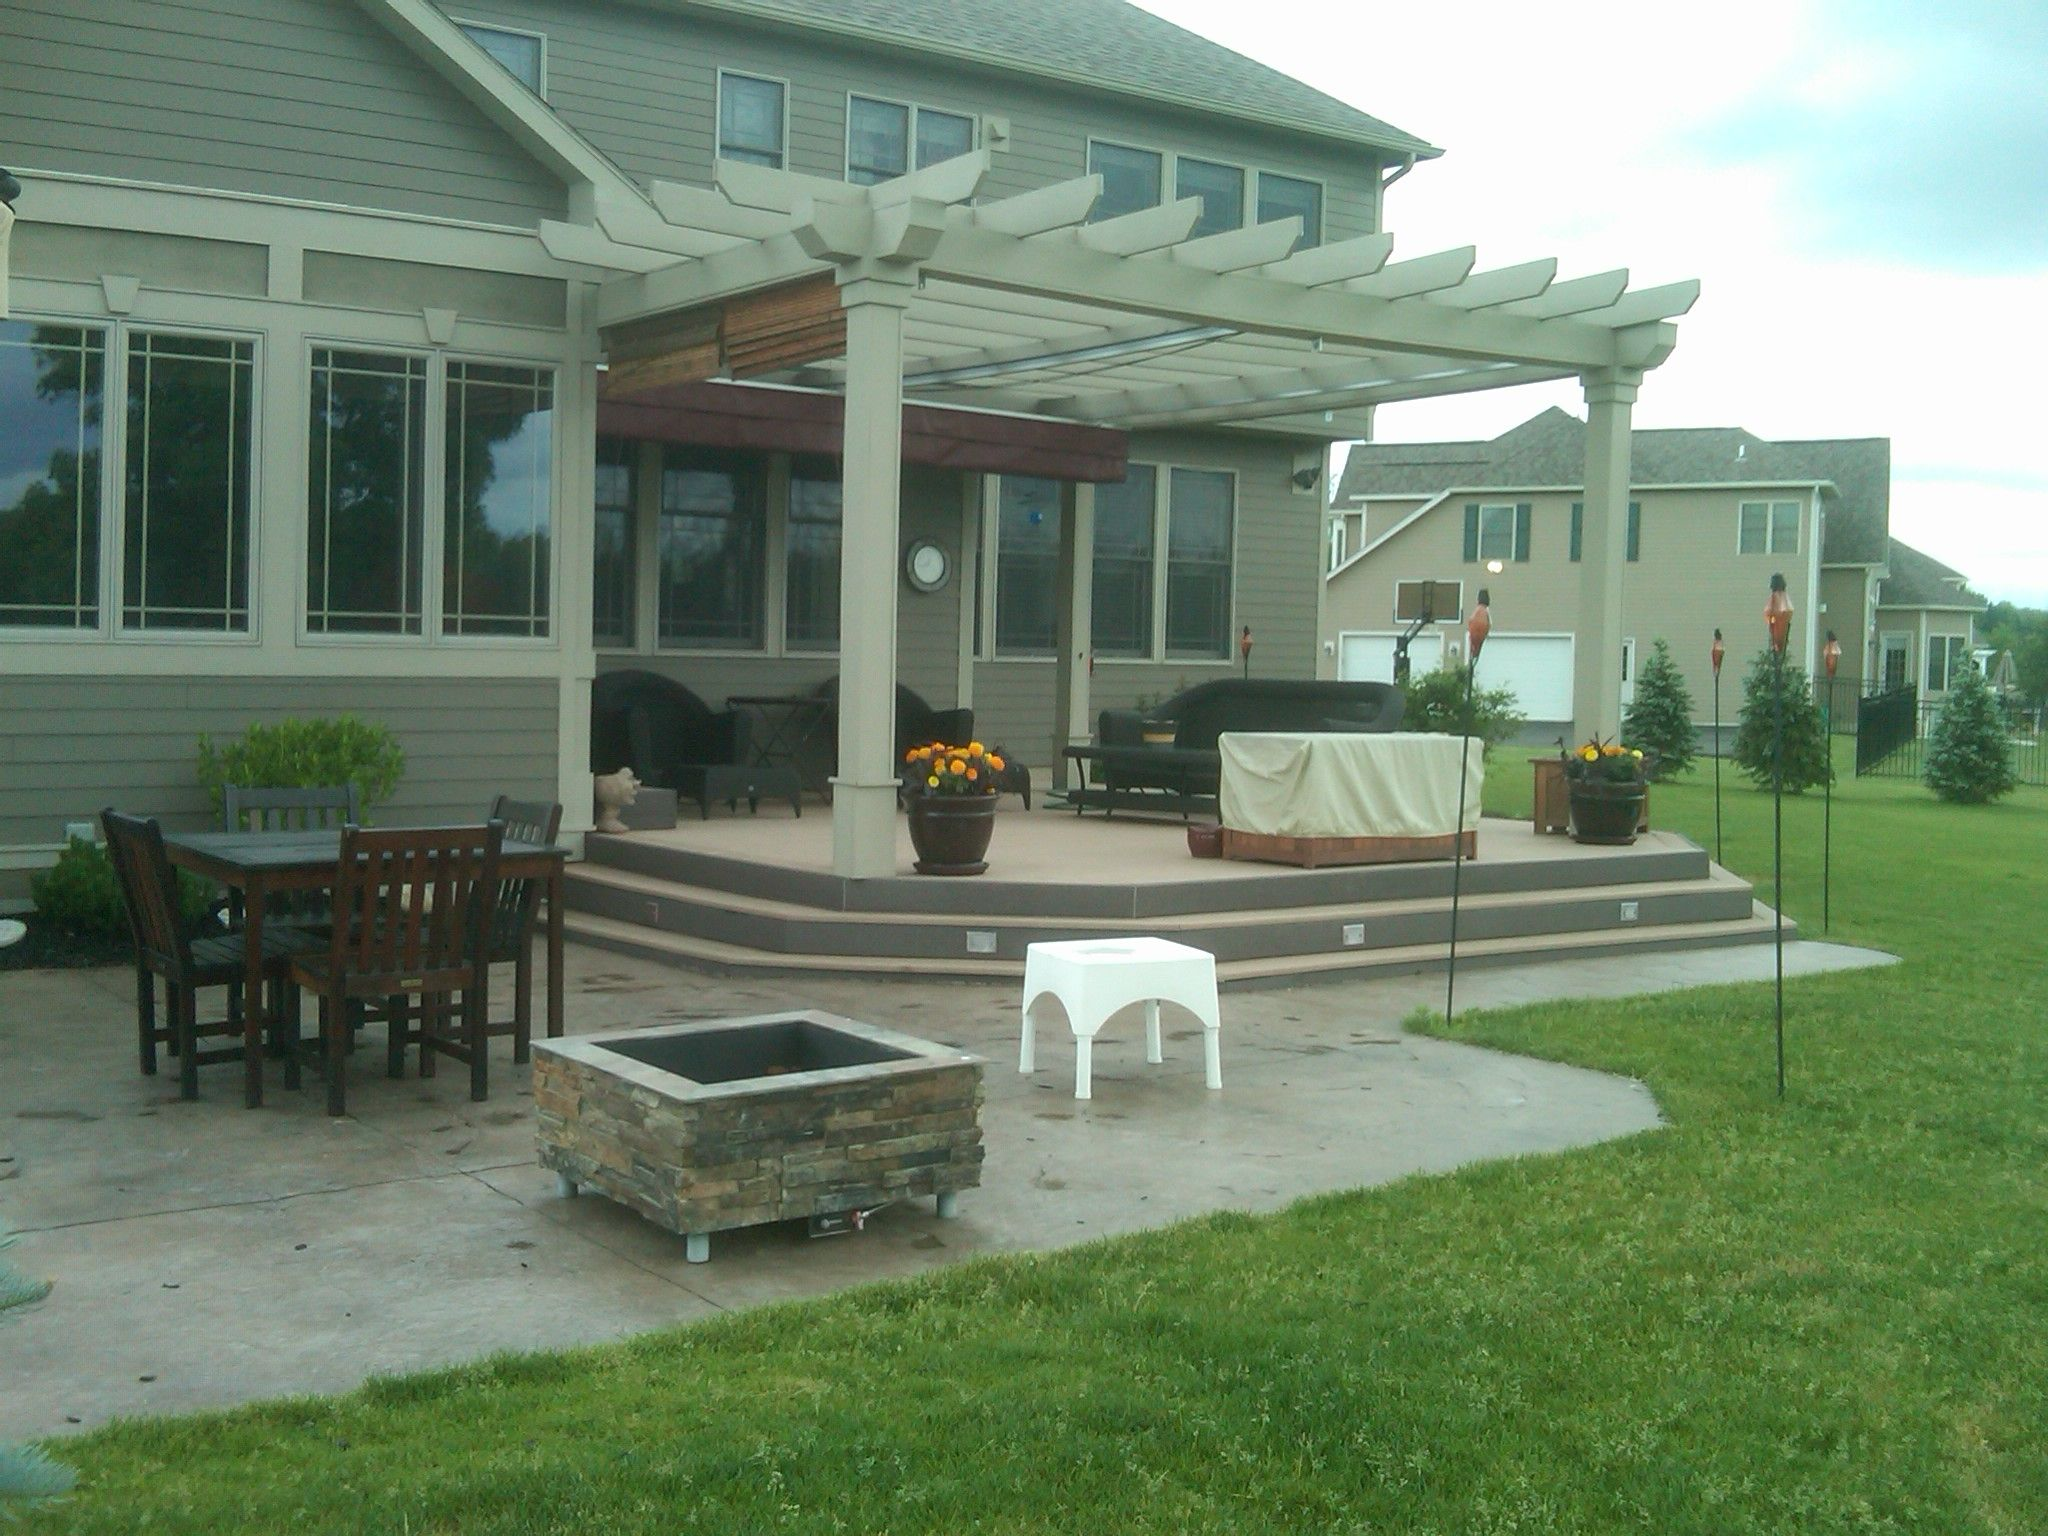 A Stamped Concrete Patio And Decorative Concrete Patio From Nu Crete Can  Provide That Stone Patio Look At A Fraction Of The Cost.